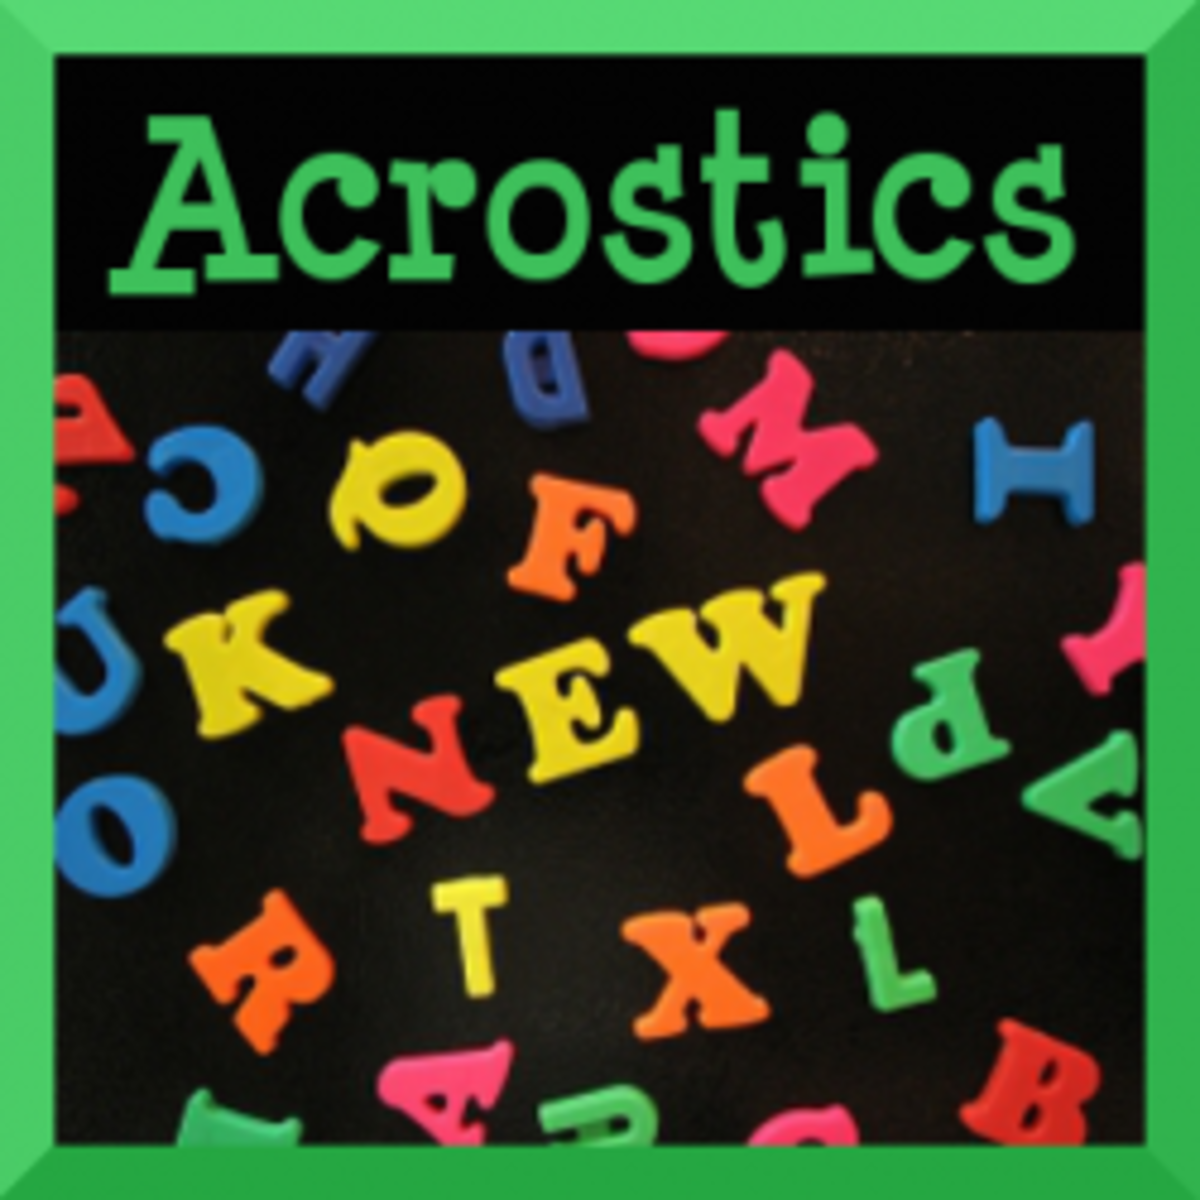 Language Arts Lessons with Acrostics